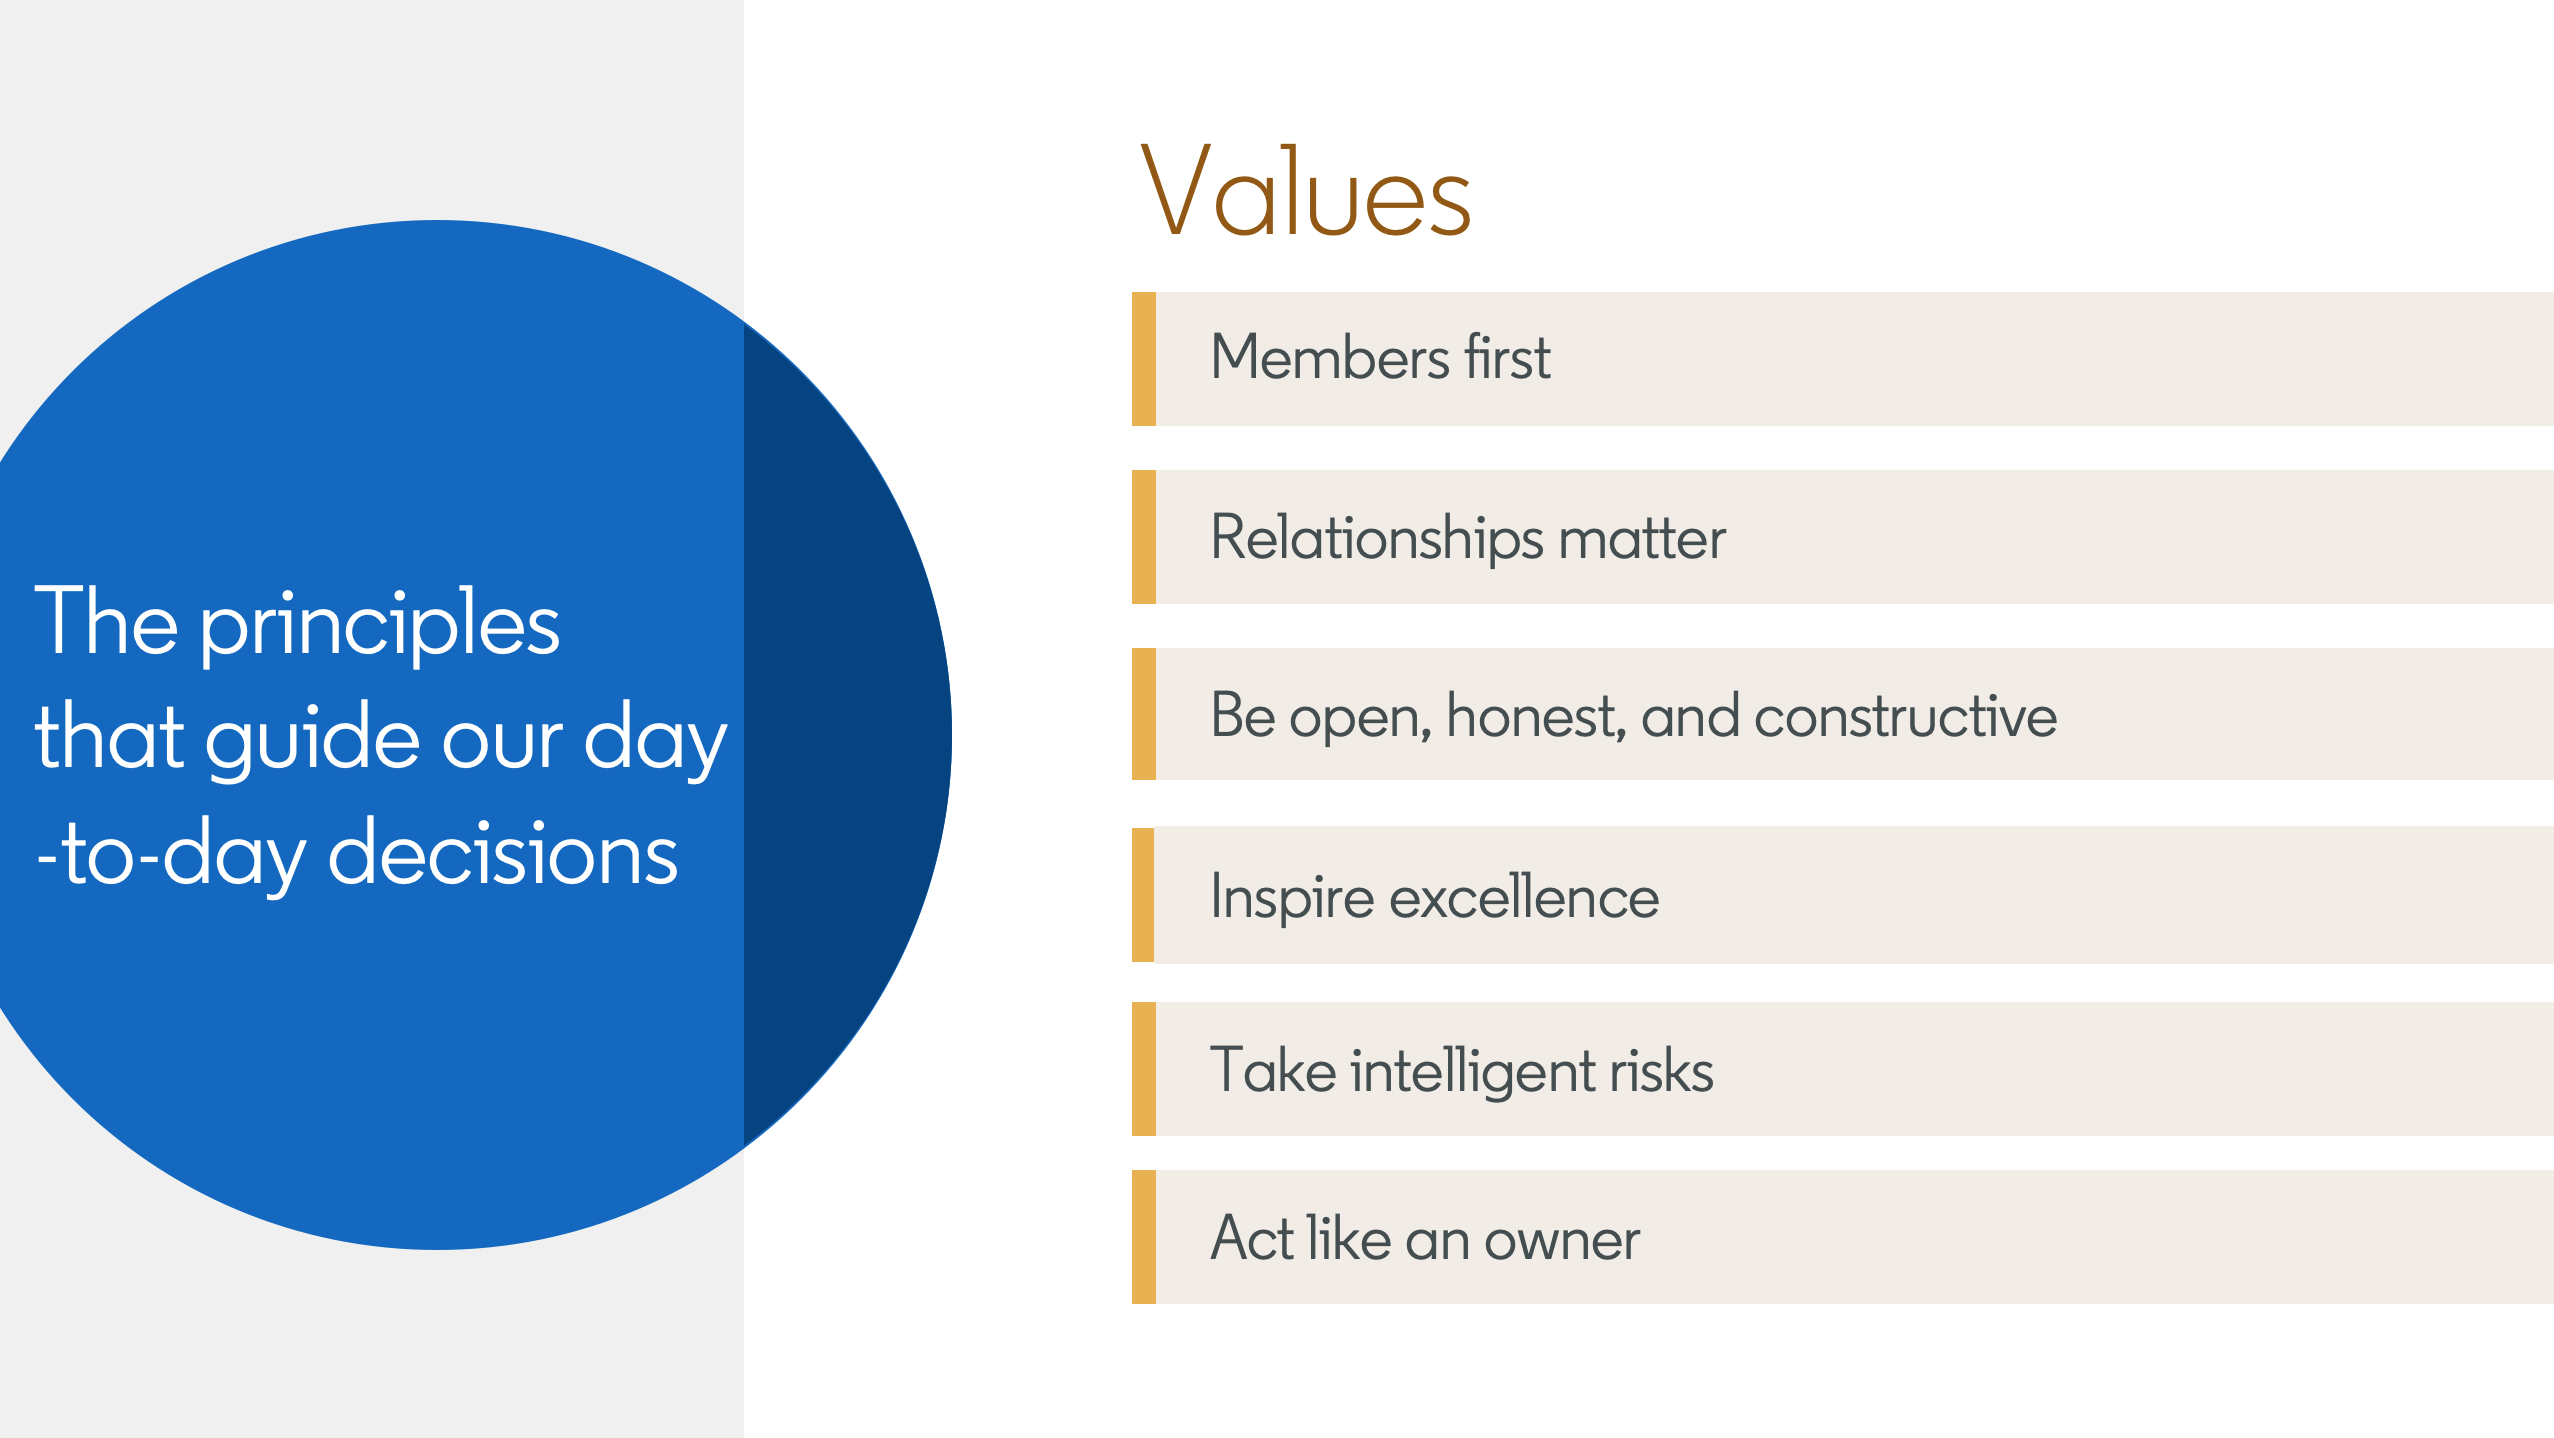 Screenshot of slide from LinkedIn onboarding deck:  The principles that guide our day-to-day decisions  Values: - Members first - Relationships matter - Be open, honest, and constructive - Inspire excellence - Take intelligent risks - Act like an owner